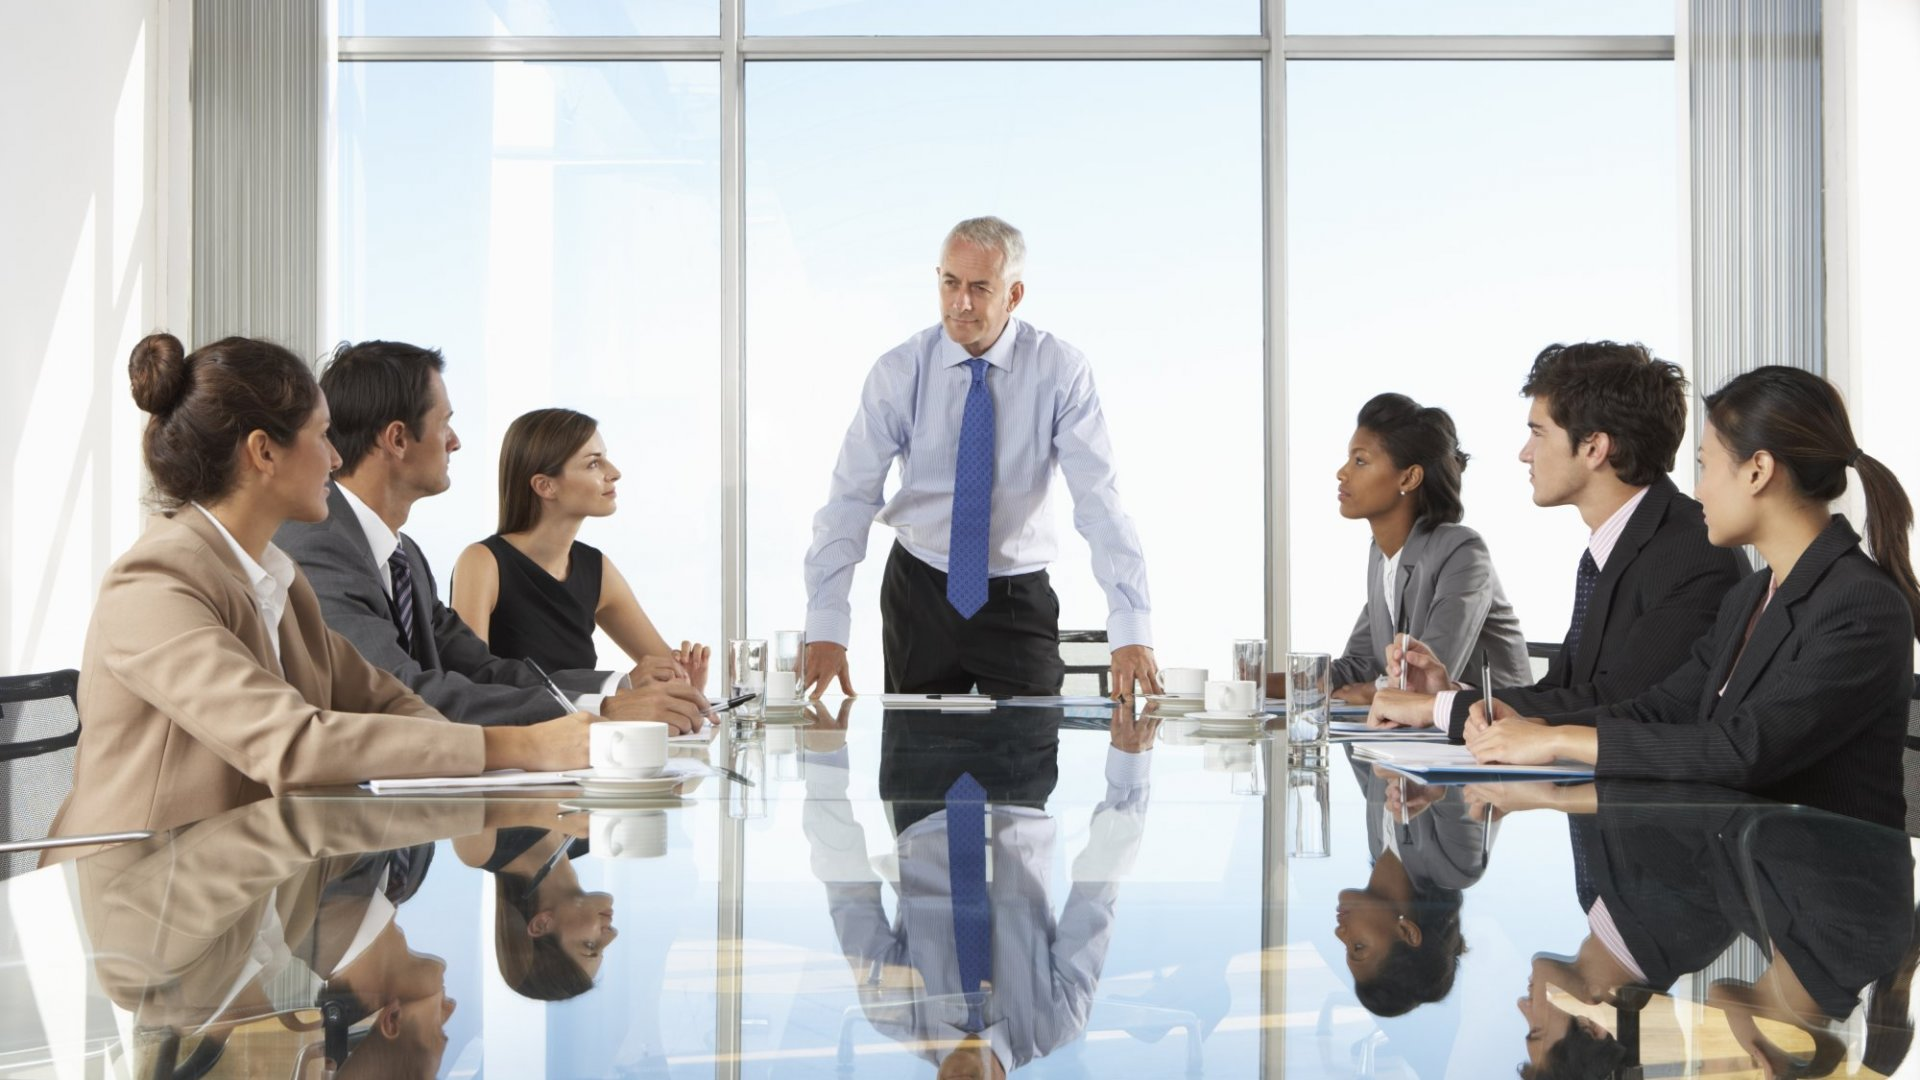 6 Tips for New CEOs Seeking Buy-In from Their Teams